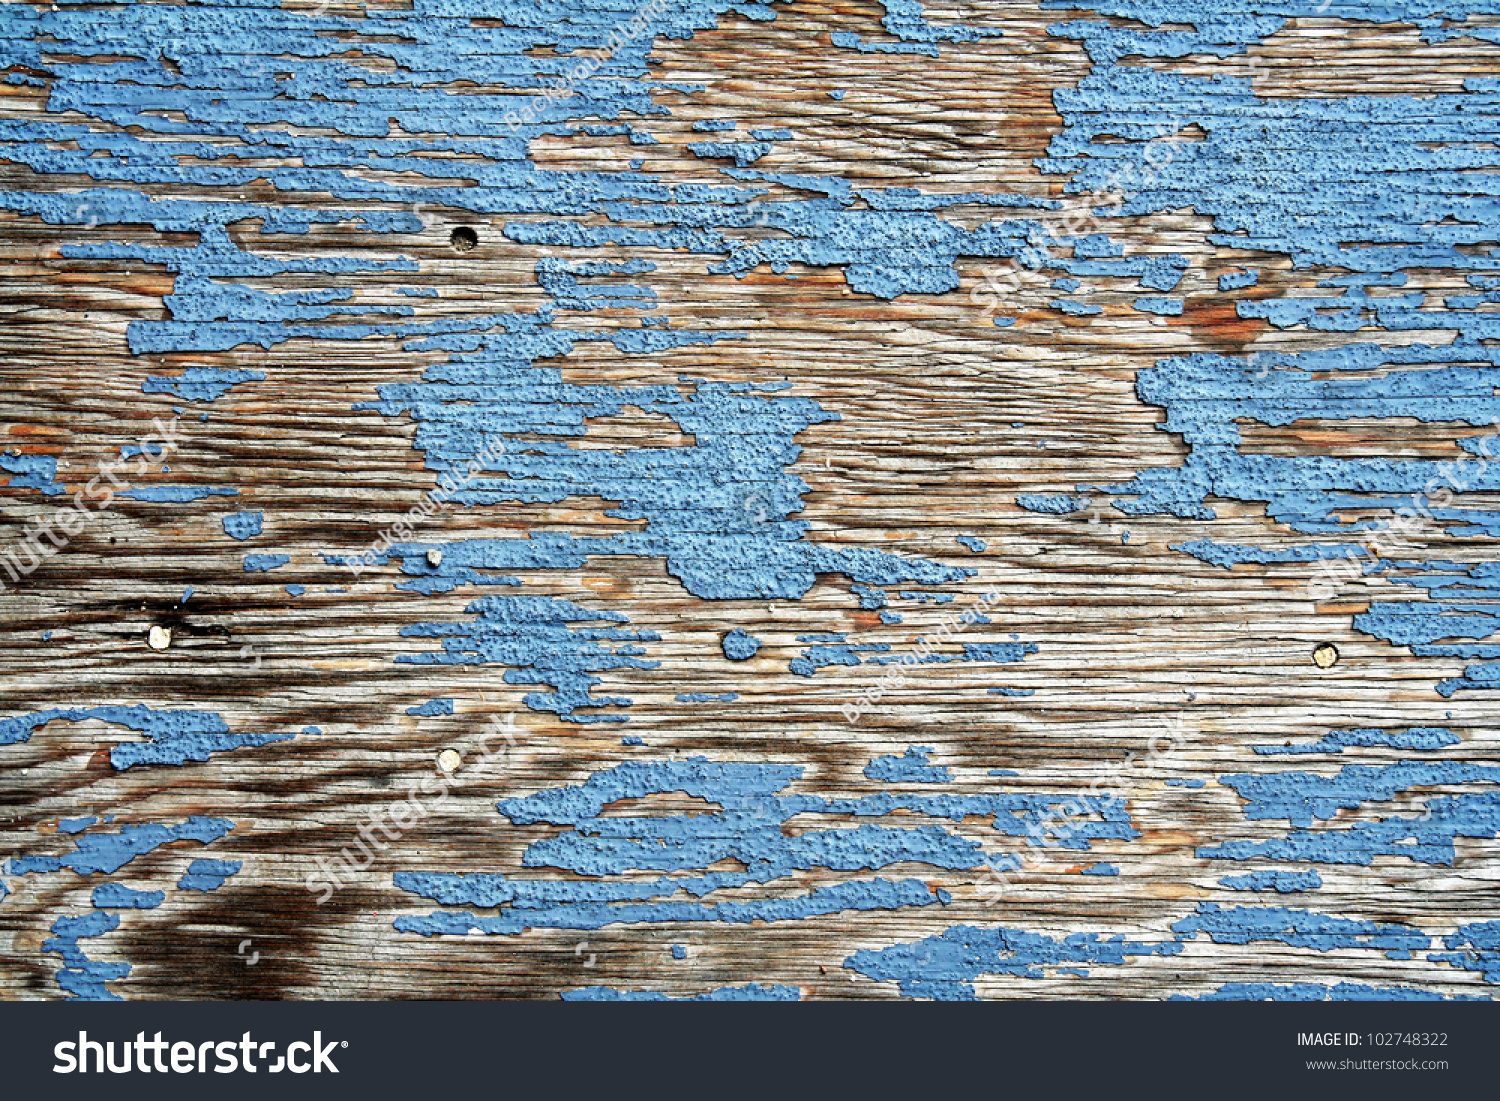 Image Exterior Building Material Texture Background Stock Photo 102748322 Shutterstock